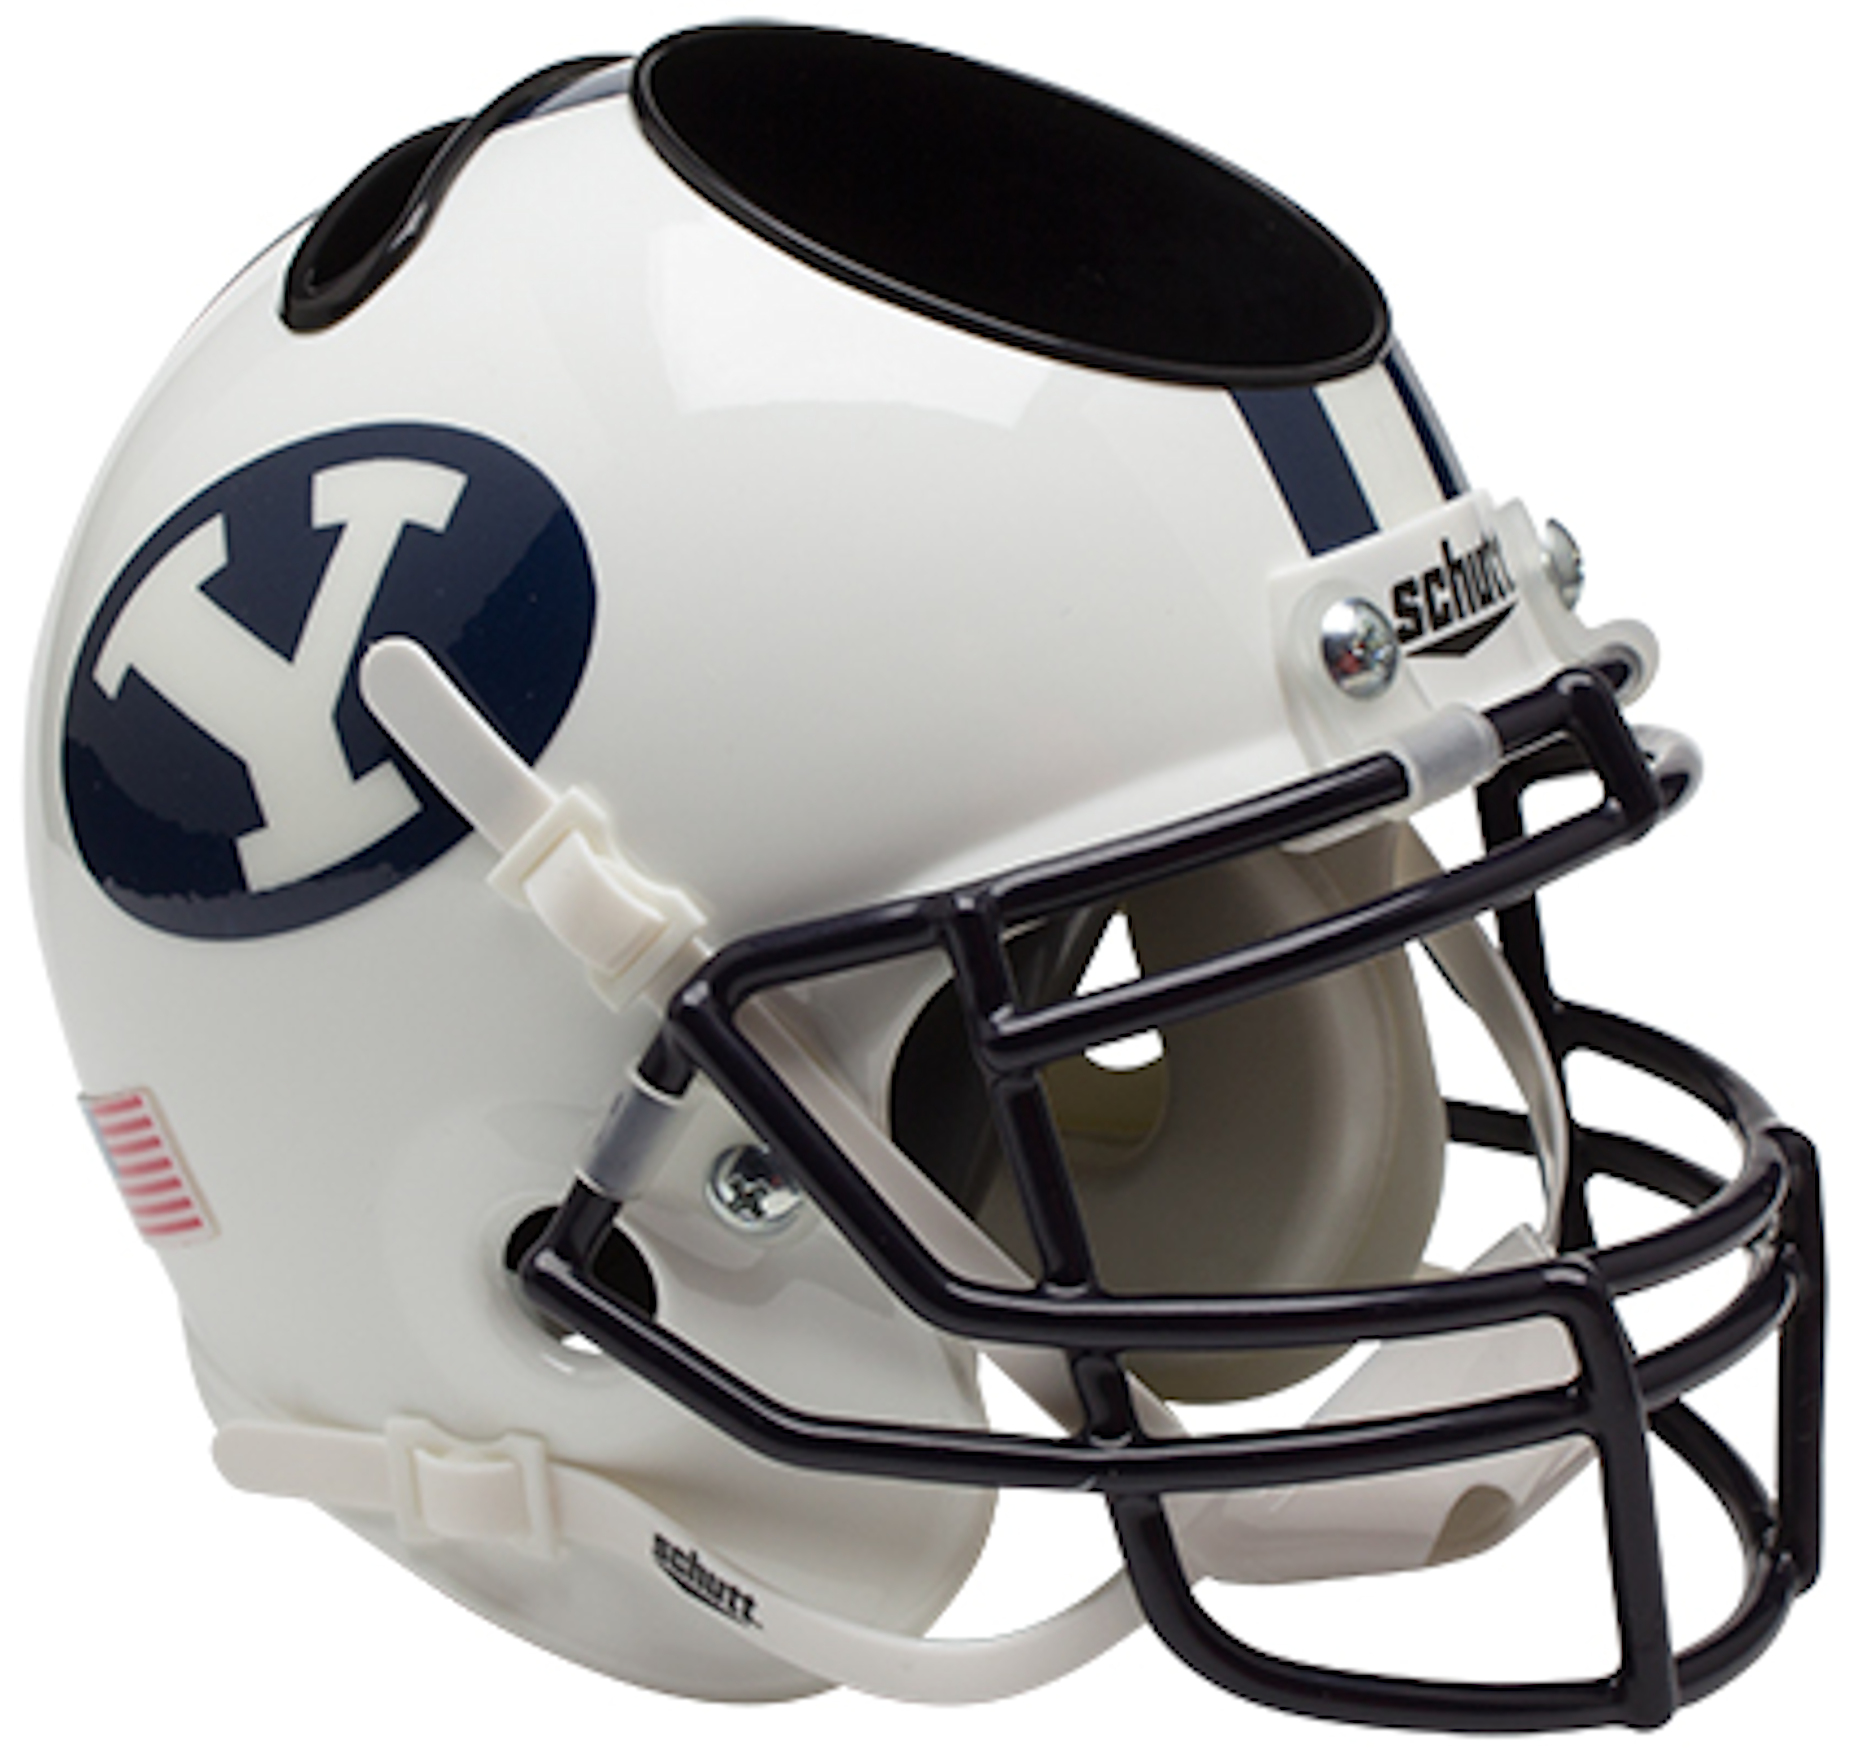 Brigham Young Cougars Miniature Football Helmet Desk Caddy